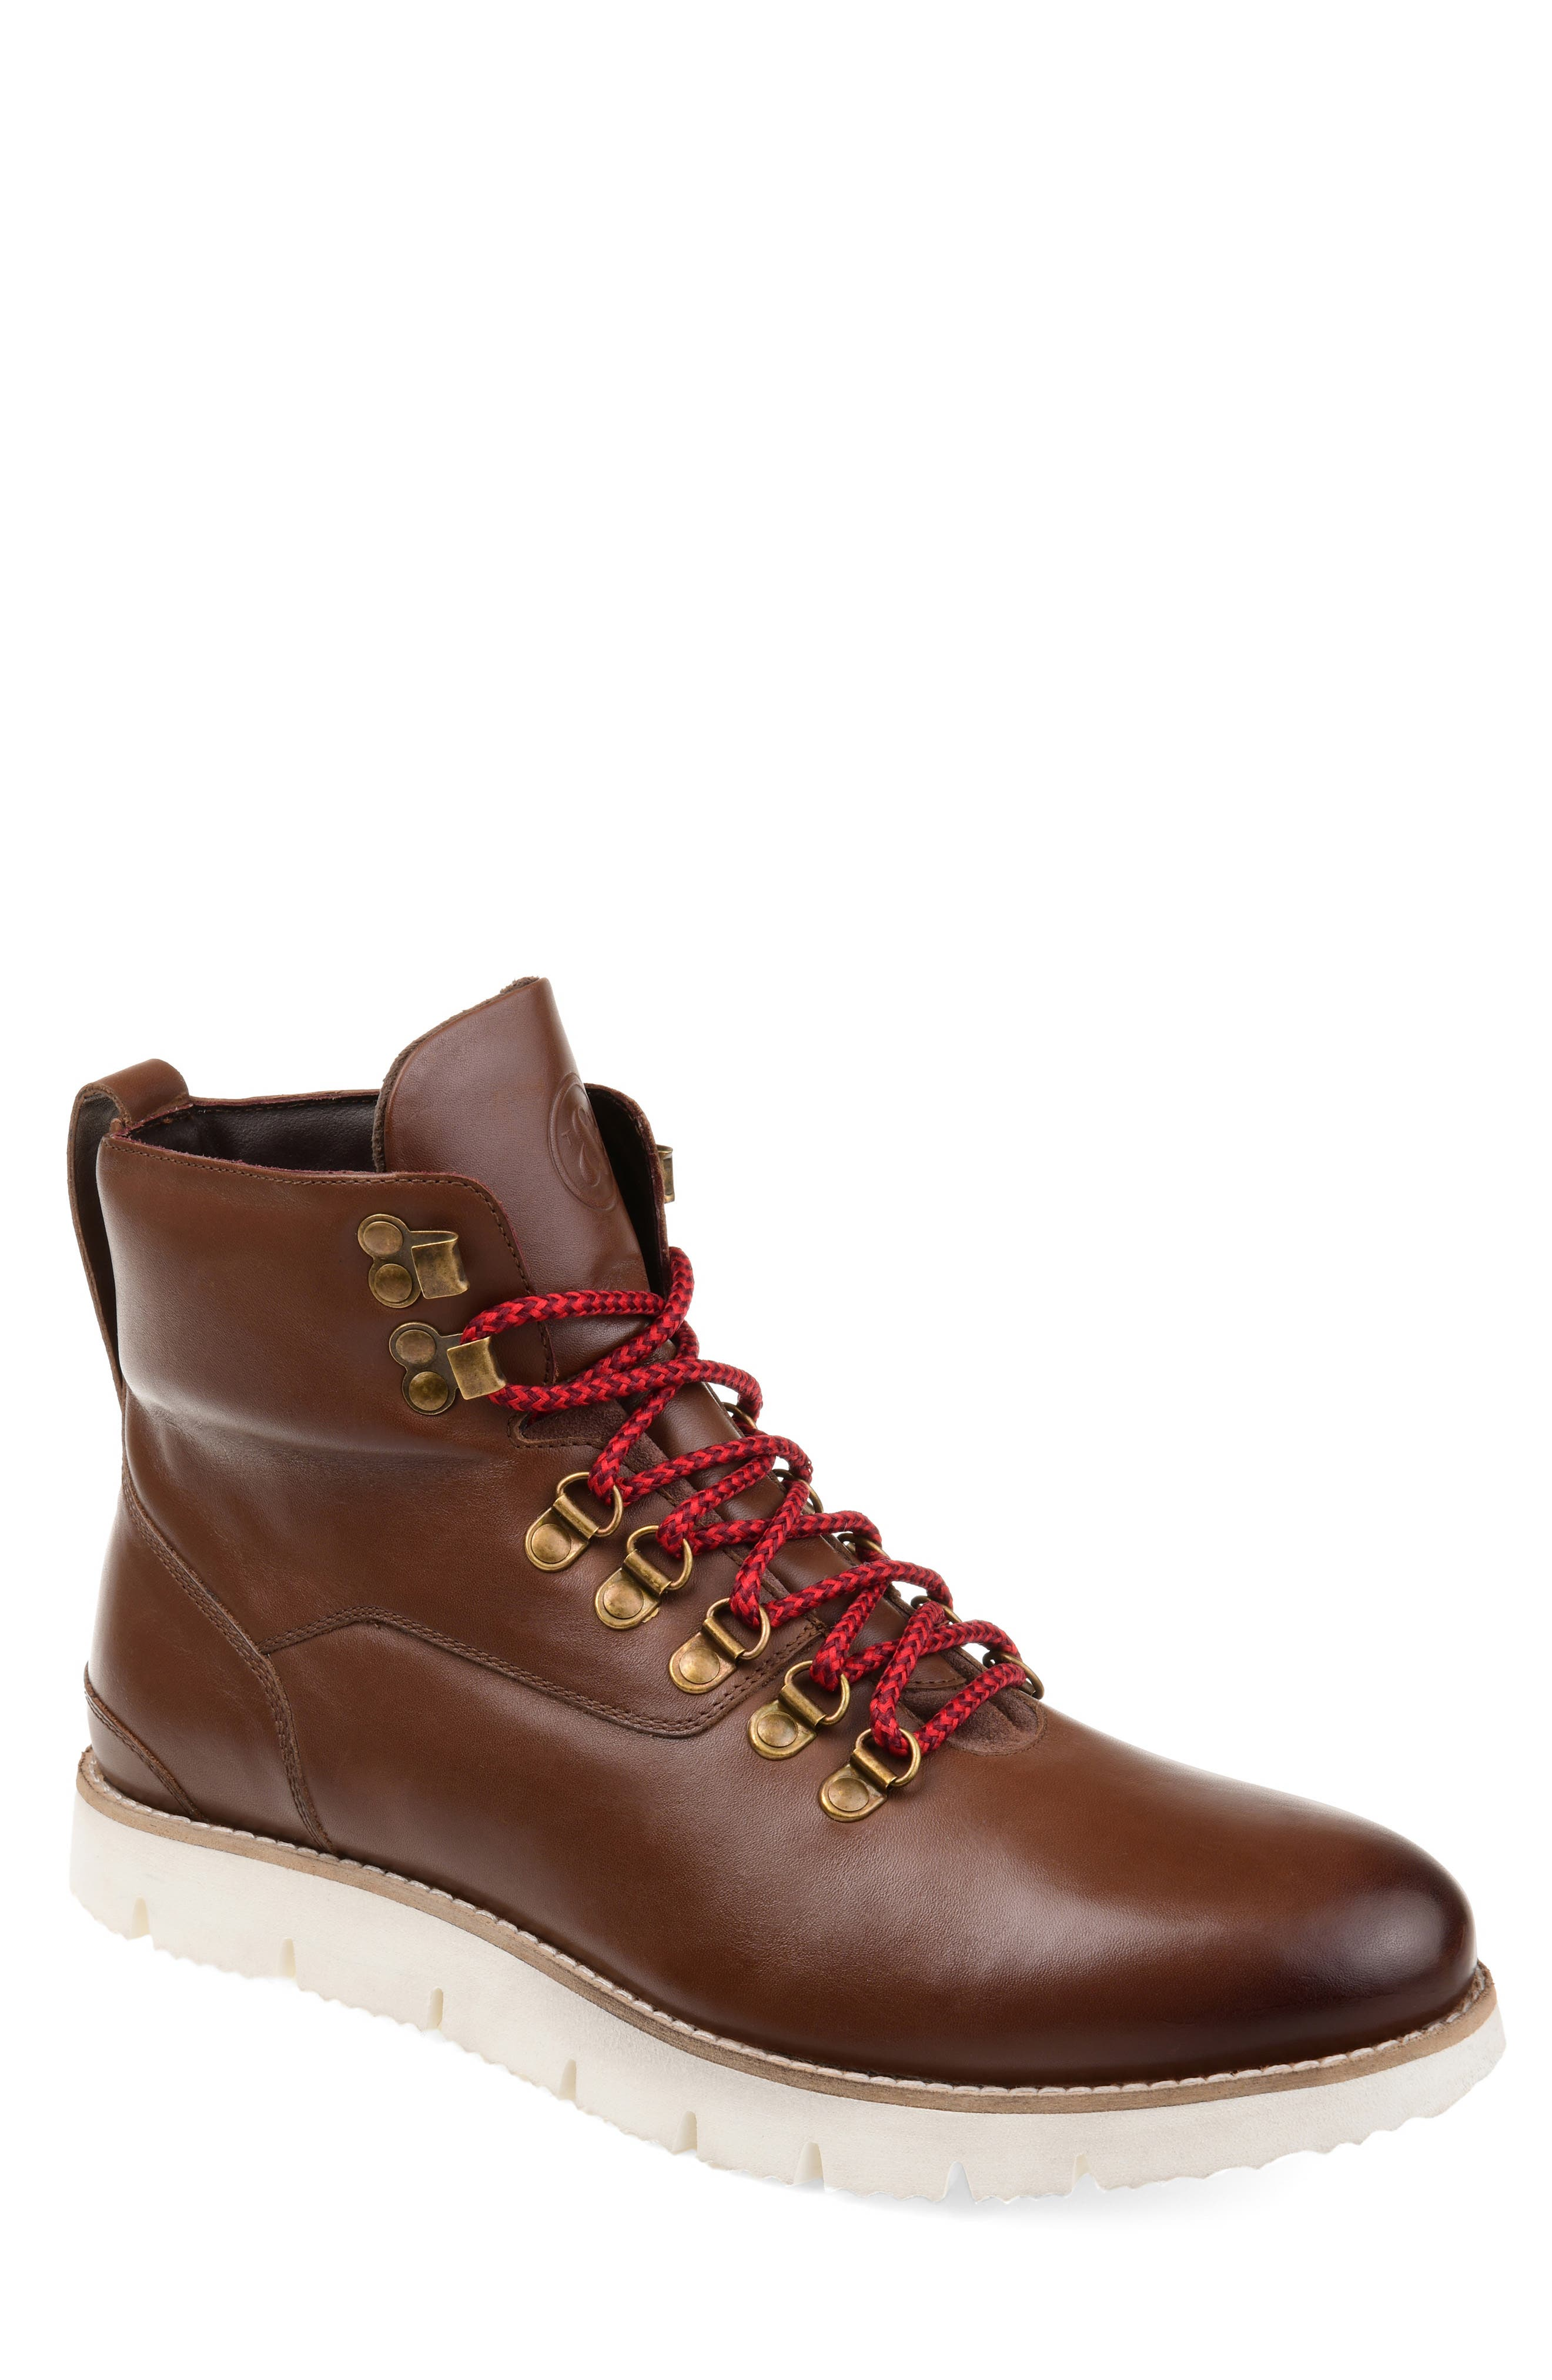 Color-pop lacing ladders up the front of a burnished plain-toe boot outfitted with a padded cuff and an articulated white sole. Style Name: Thomas & Vine Siege Boot (Men). Style Number: 5715635 1. Available in stores.